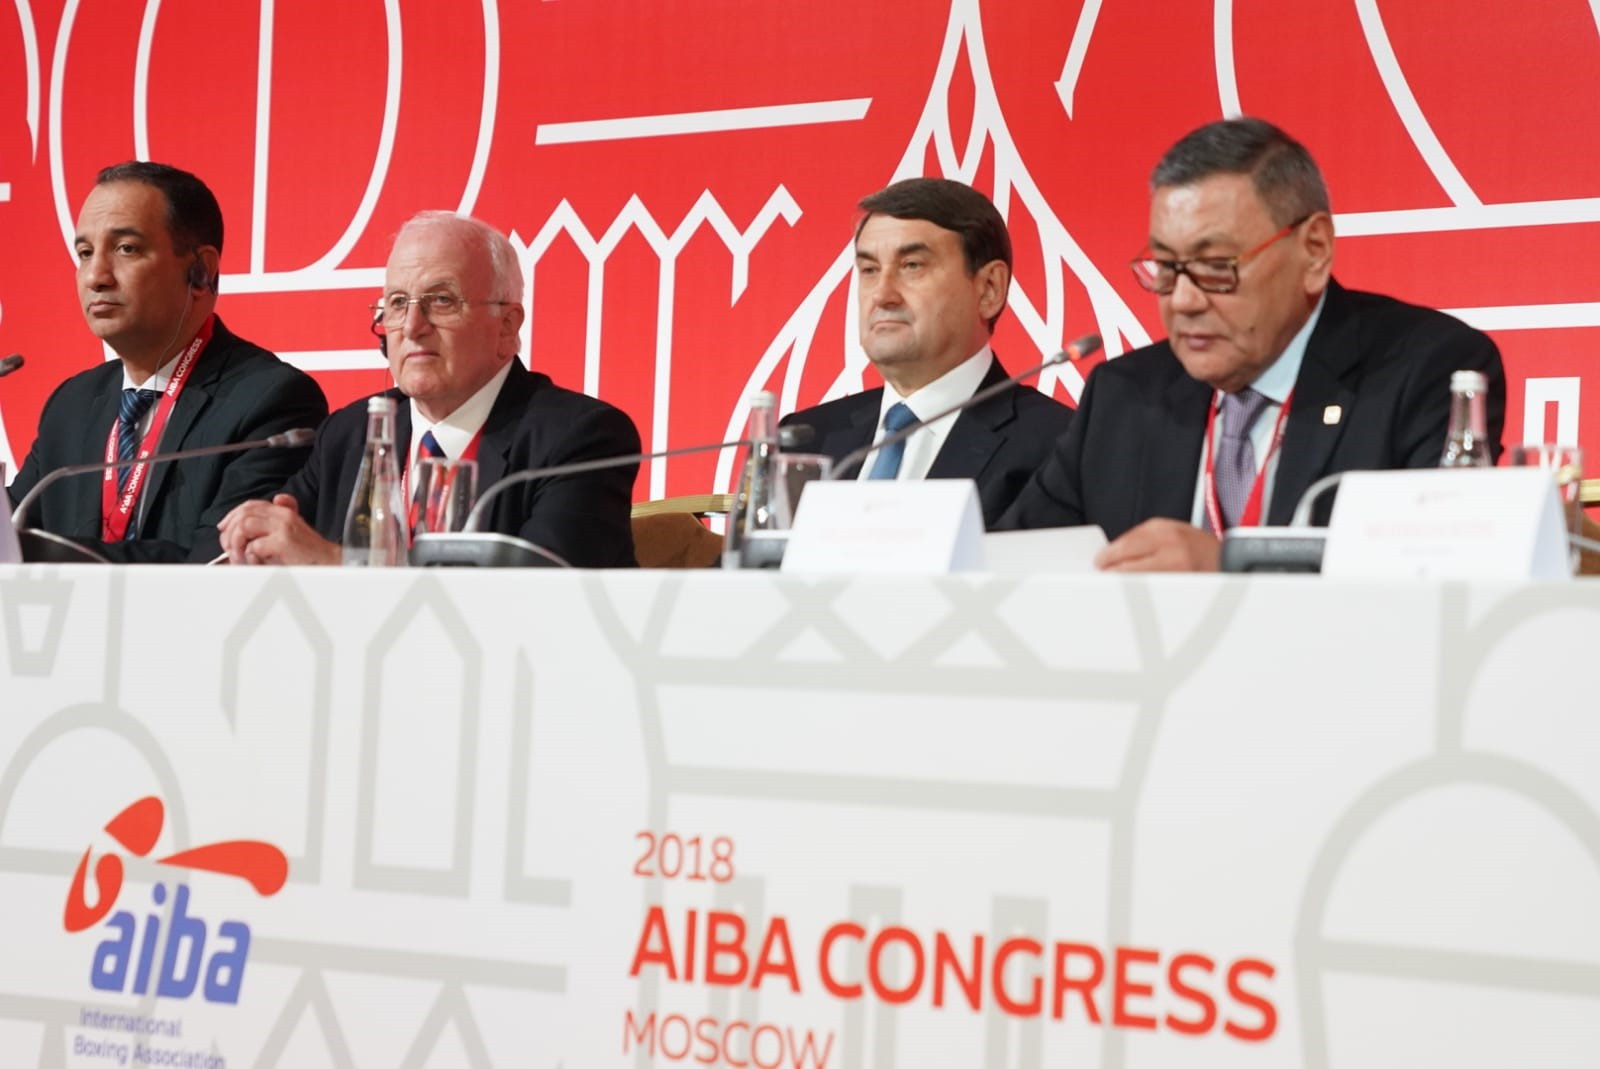 New AIBA President Gafur Rakhimov, right, has selected four additional members to add to the organisation's Executive Committee ©AIBA